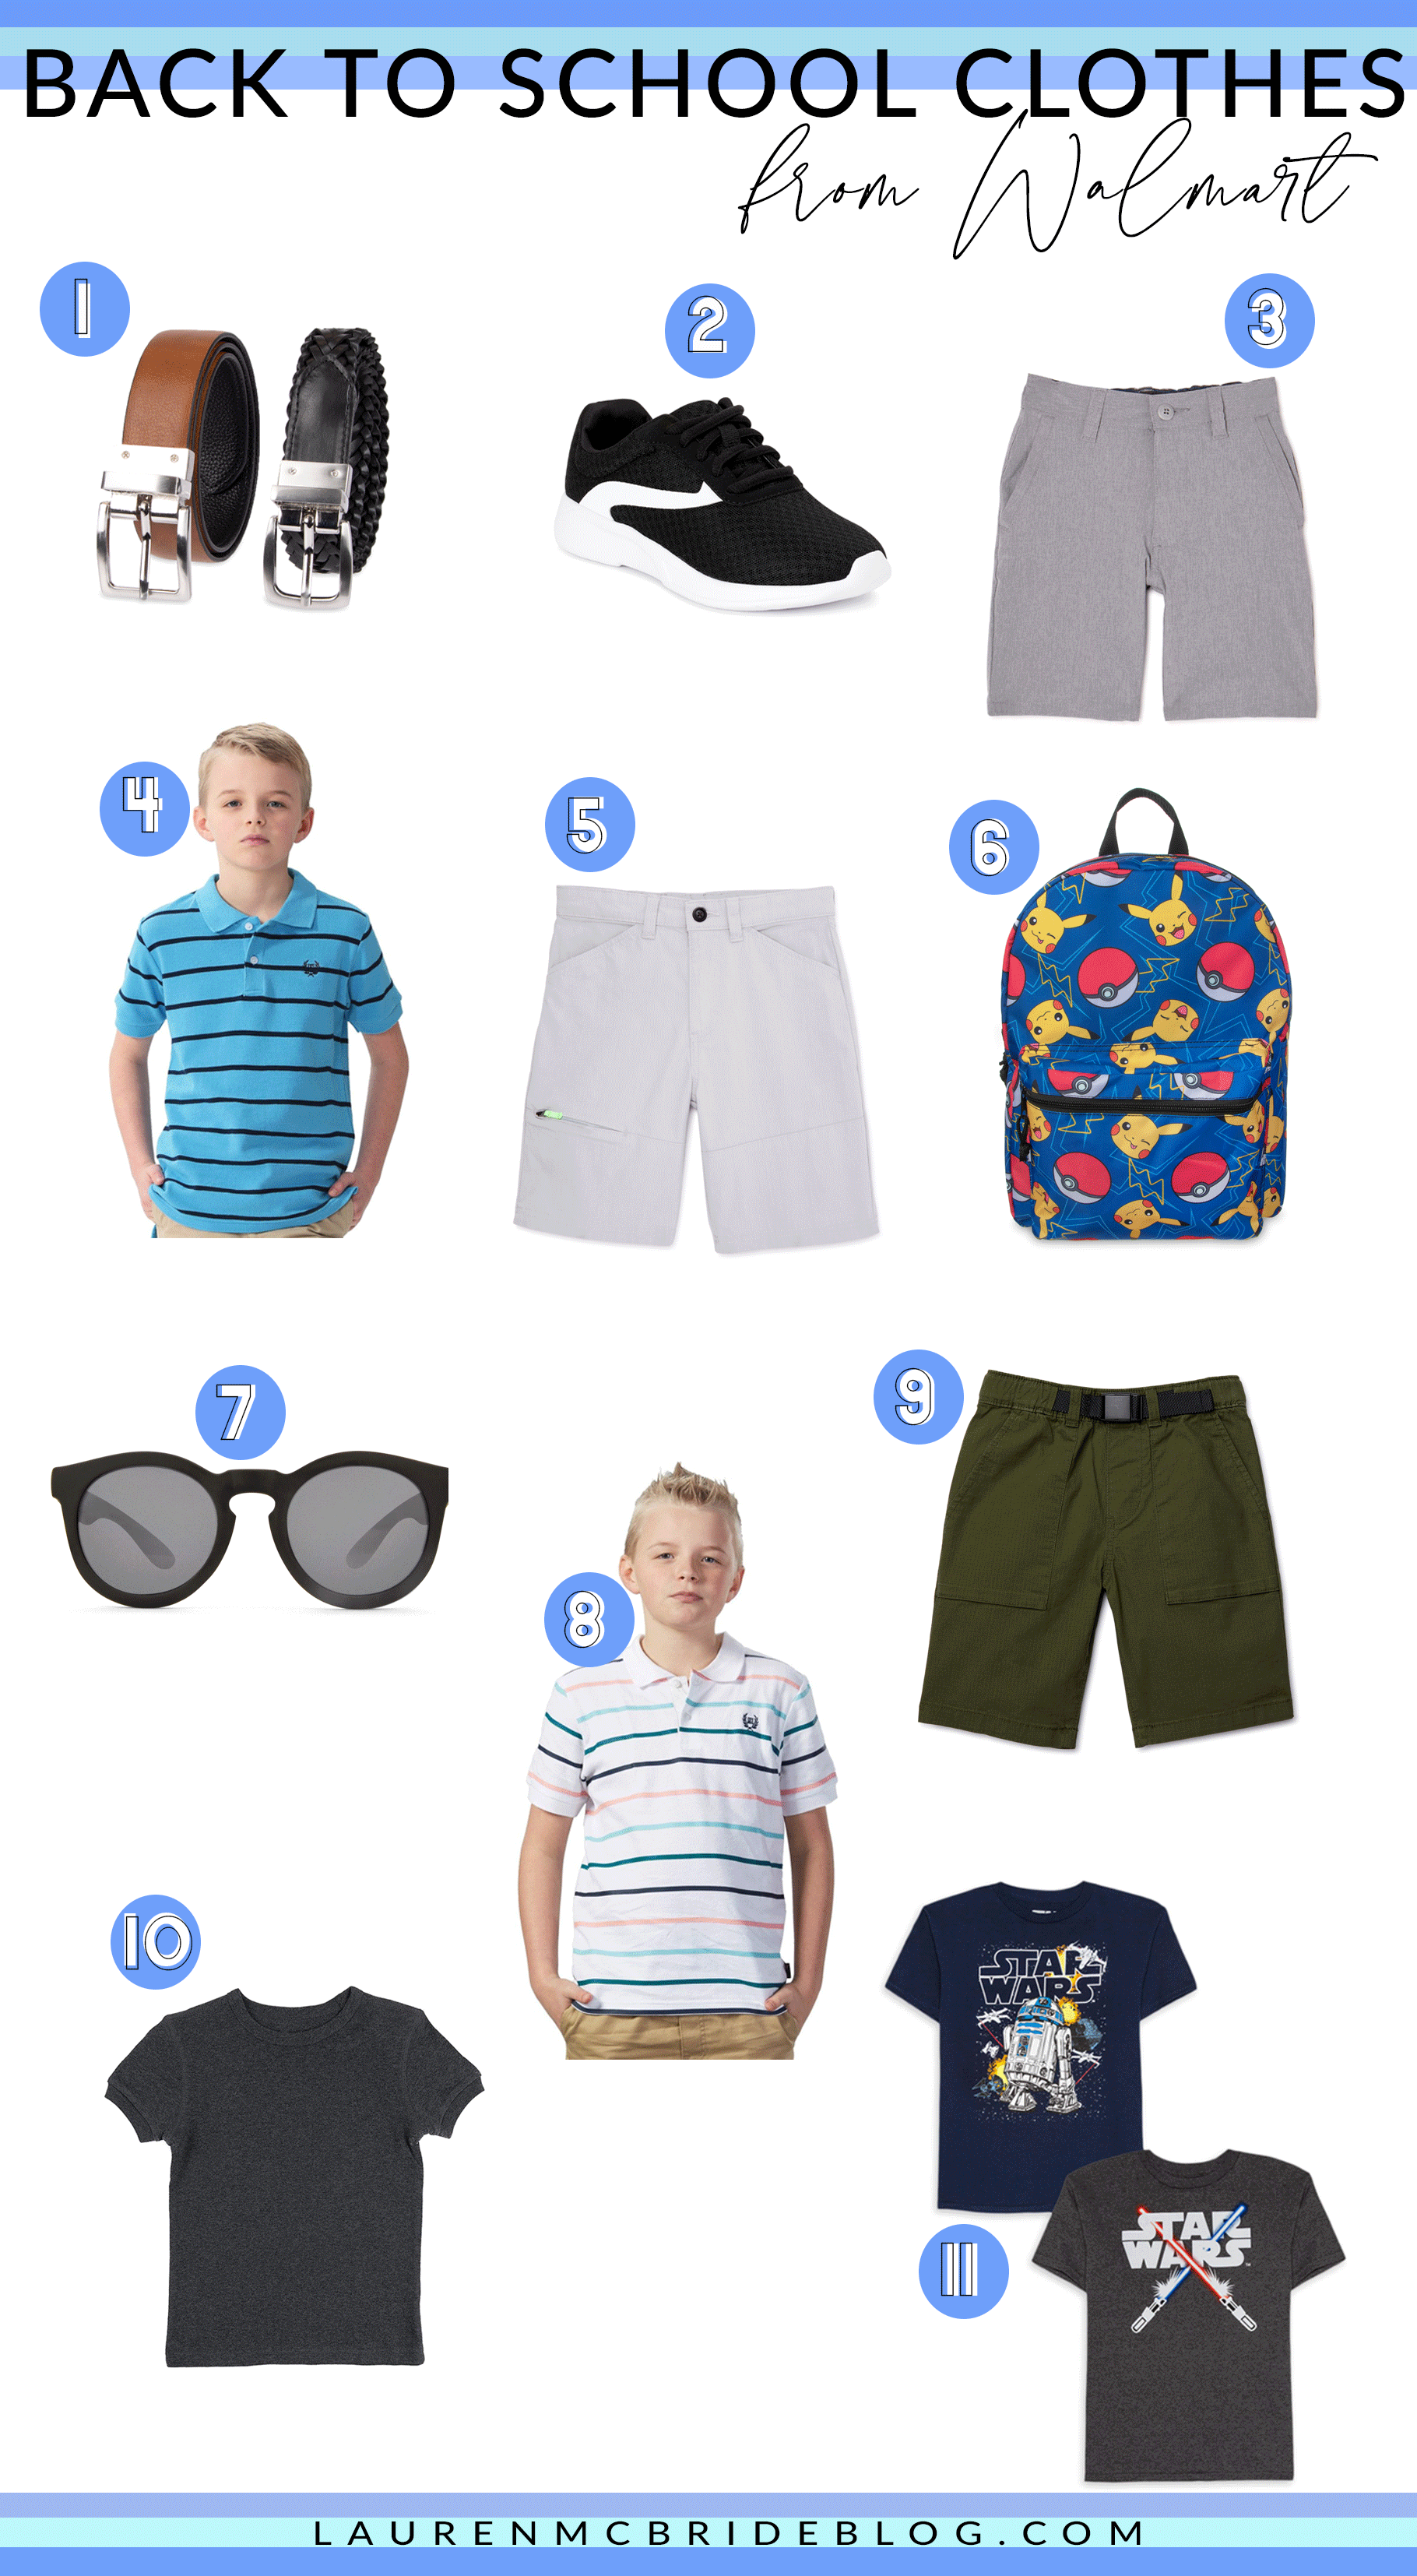 Gearing up to head back to school? Connecticut Lifestyle Blogger Lauren McBride is sharing her favorite back to school clothes for boys and girls from Walmart HERE!